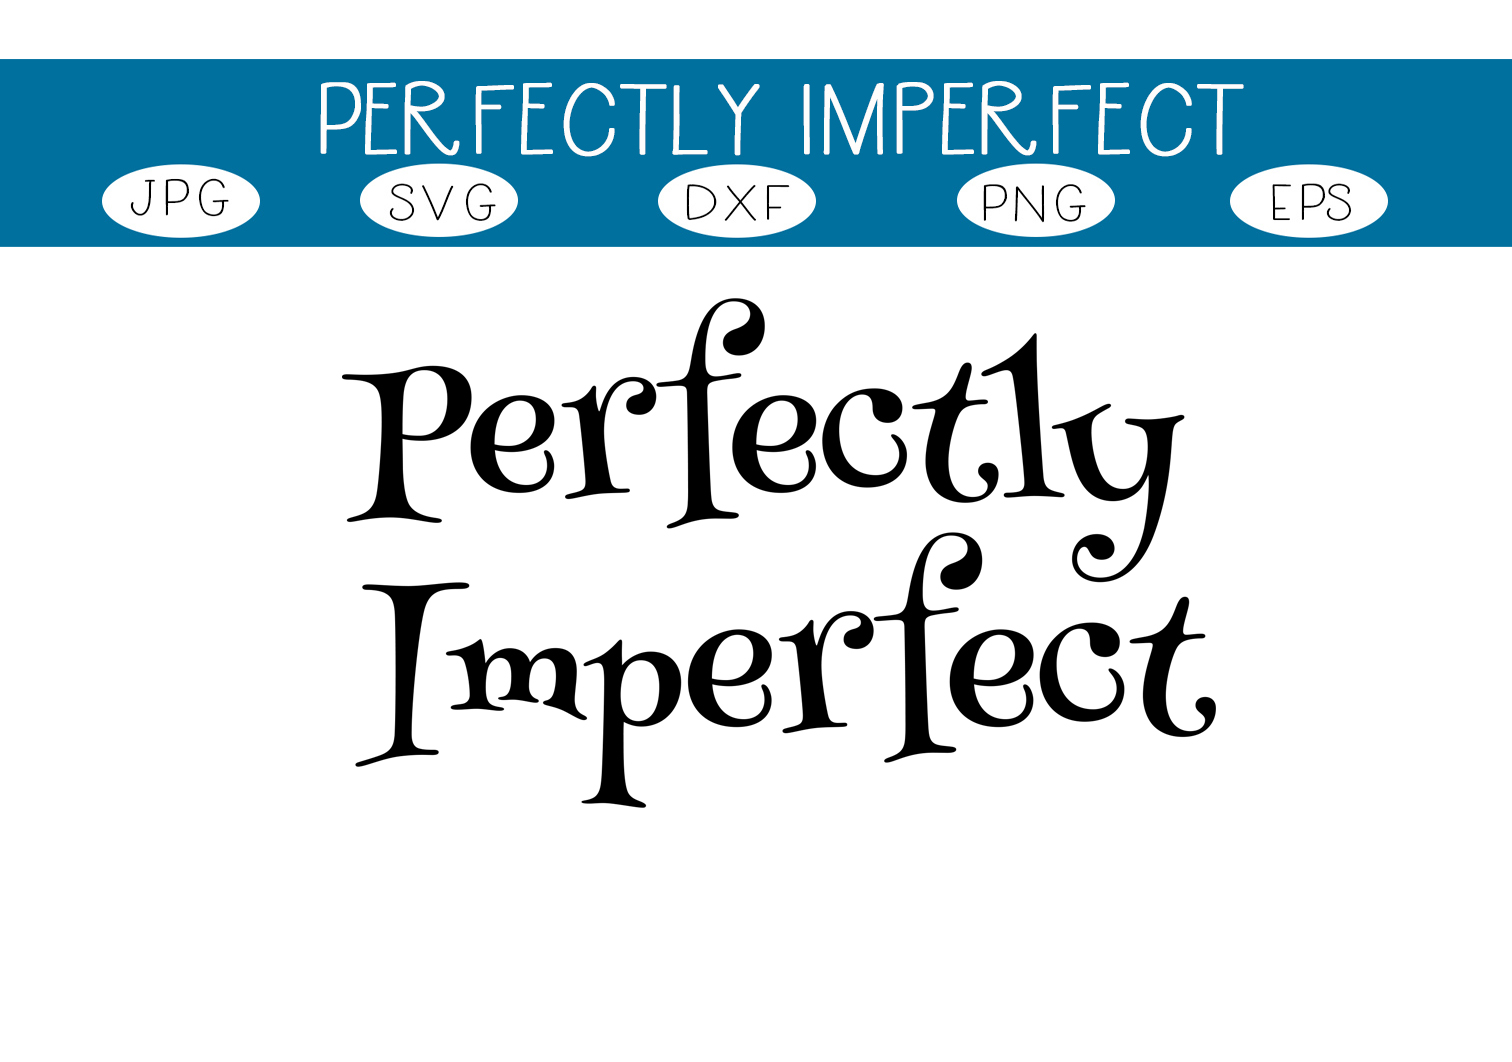 Download Free Perfectly Imperfect Graphic By Capeairforce Creative Fabrica for Cricut Explore, Silhouette and other cutting machines.